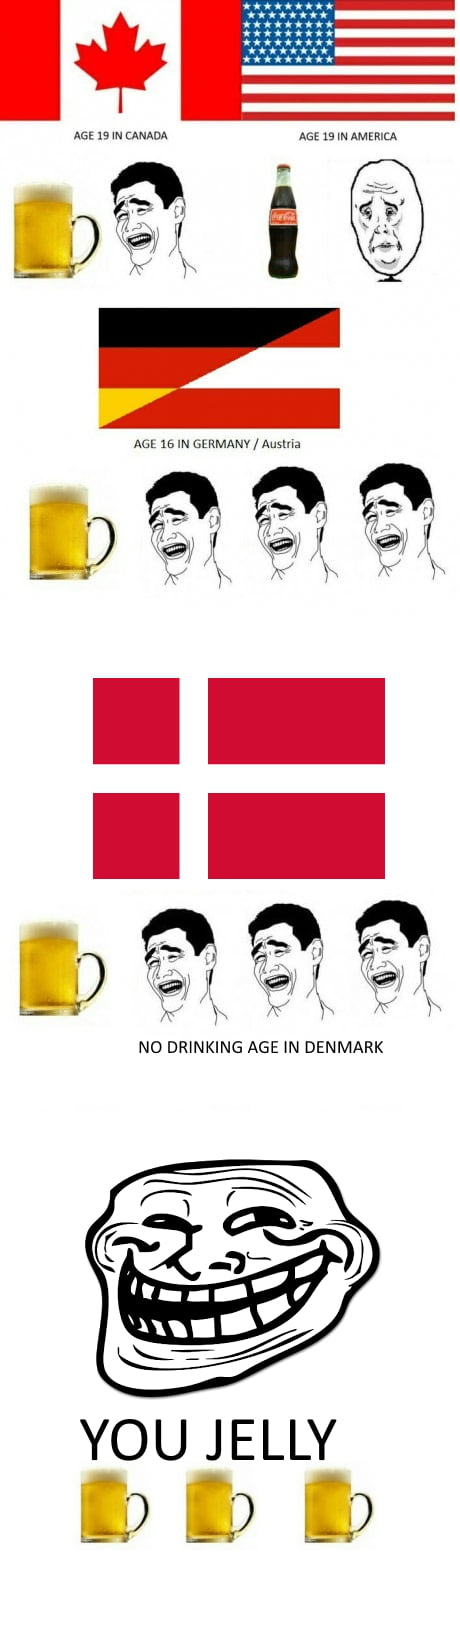 Laughs in Danish